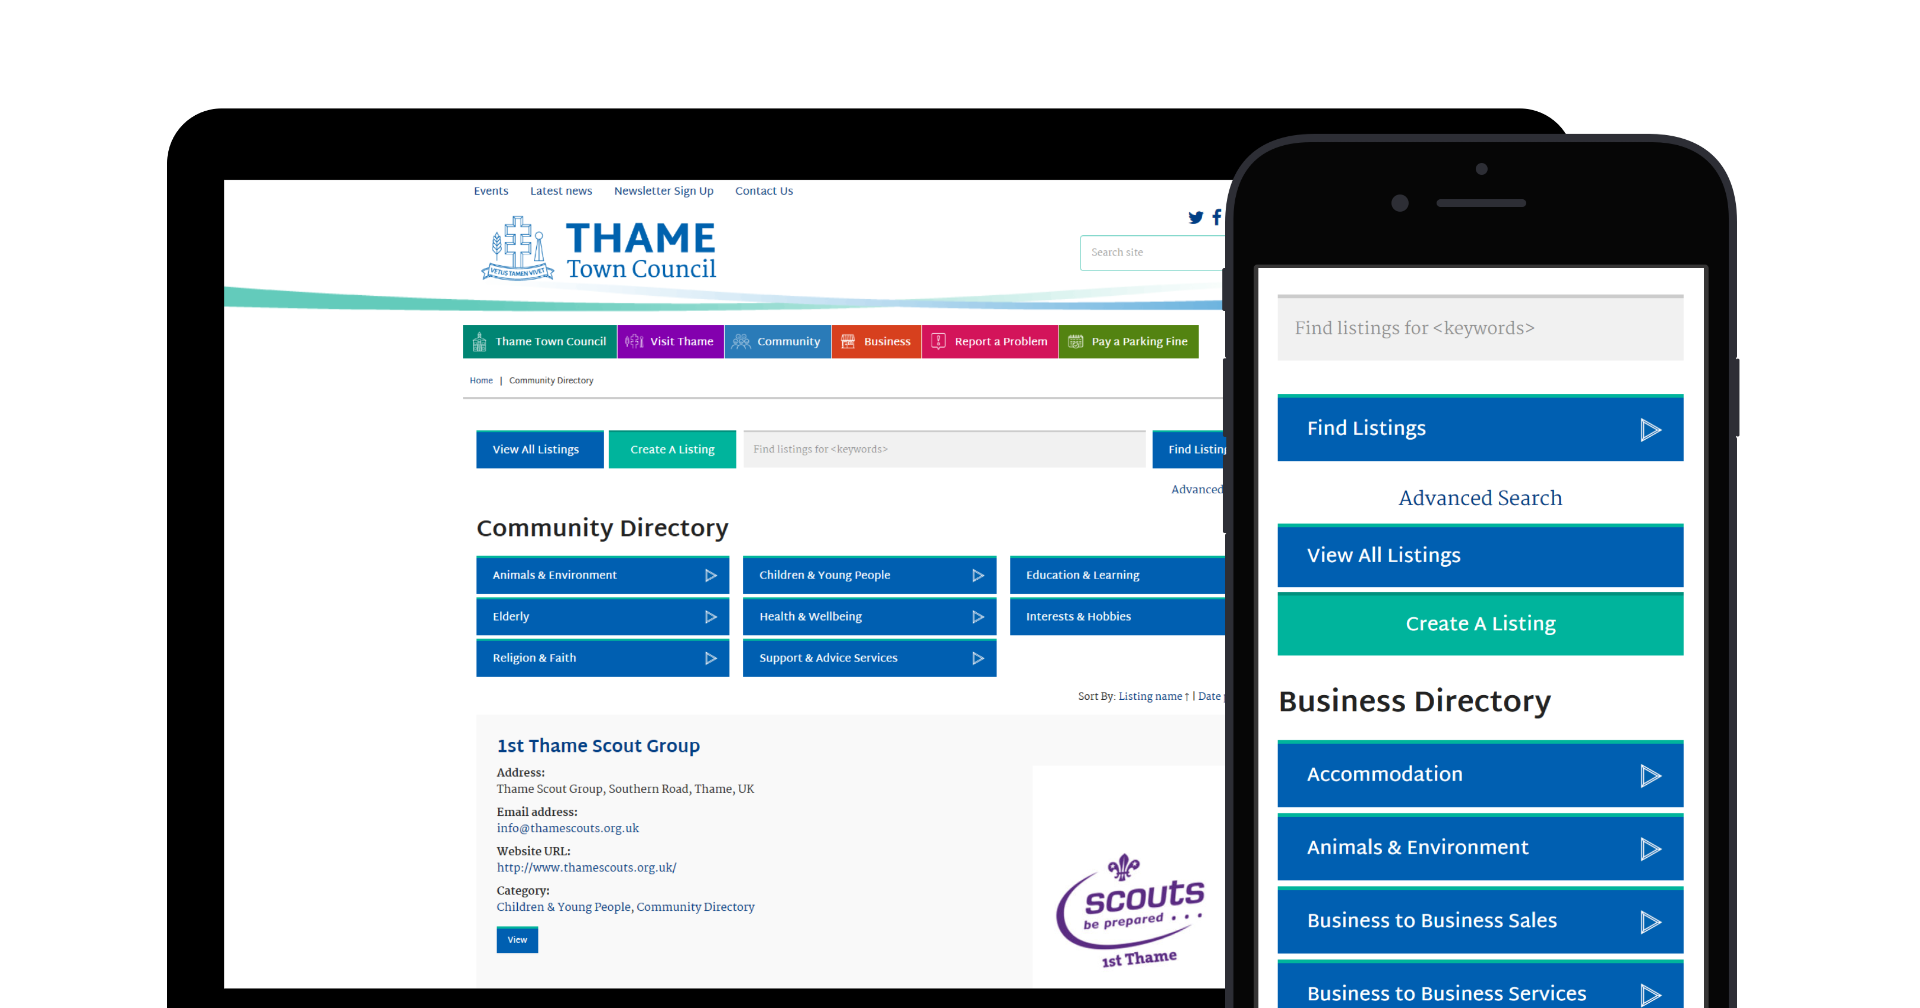 Thame Town Council's website displayed on desktop and mobile